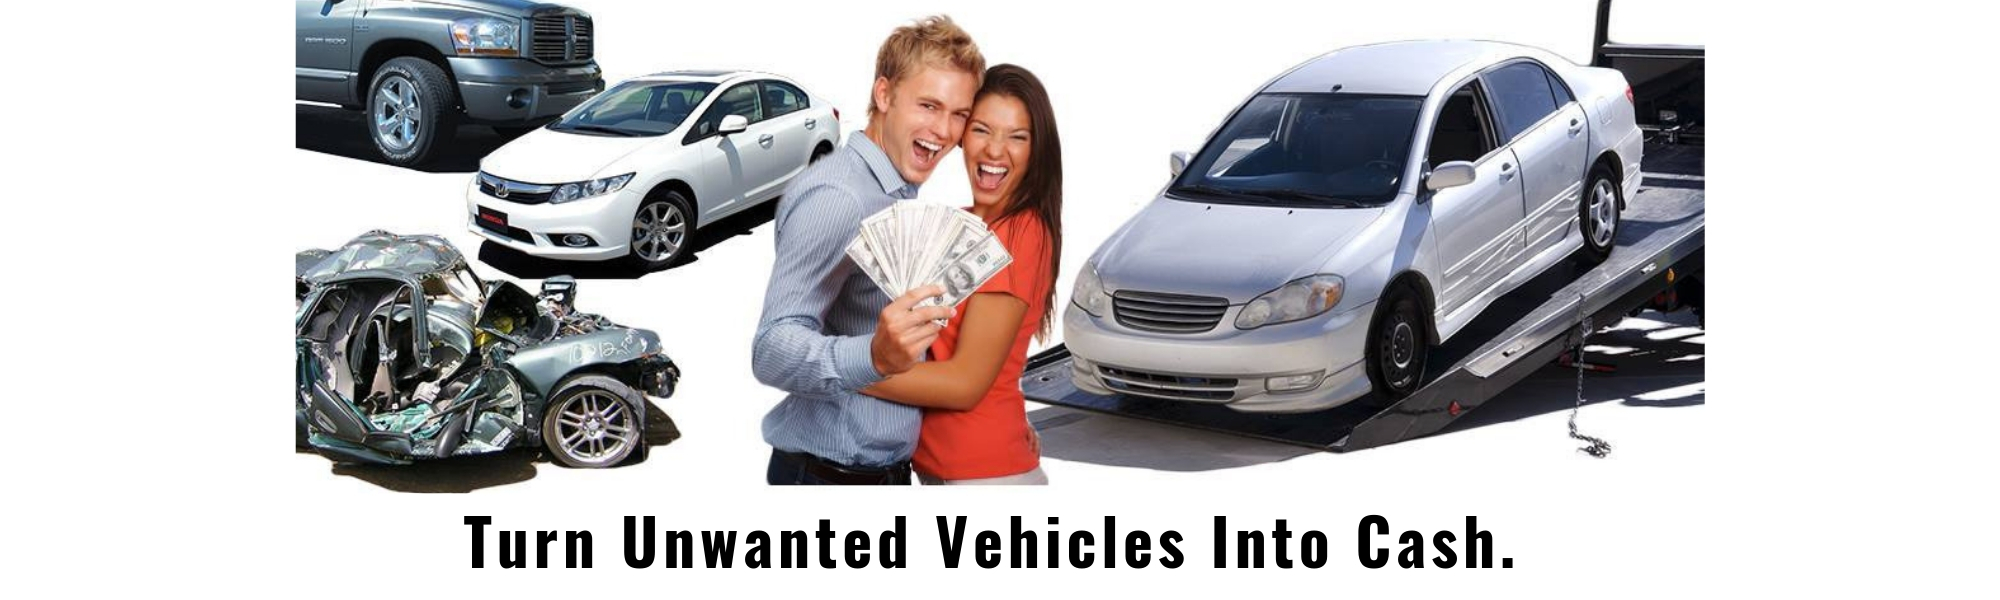 Turn Unwanted Vehicles Into Cash!